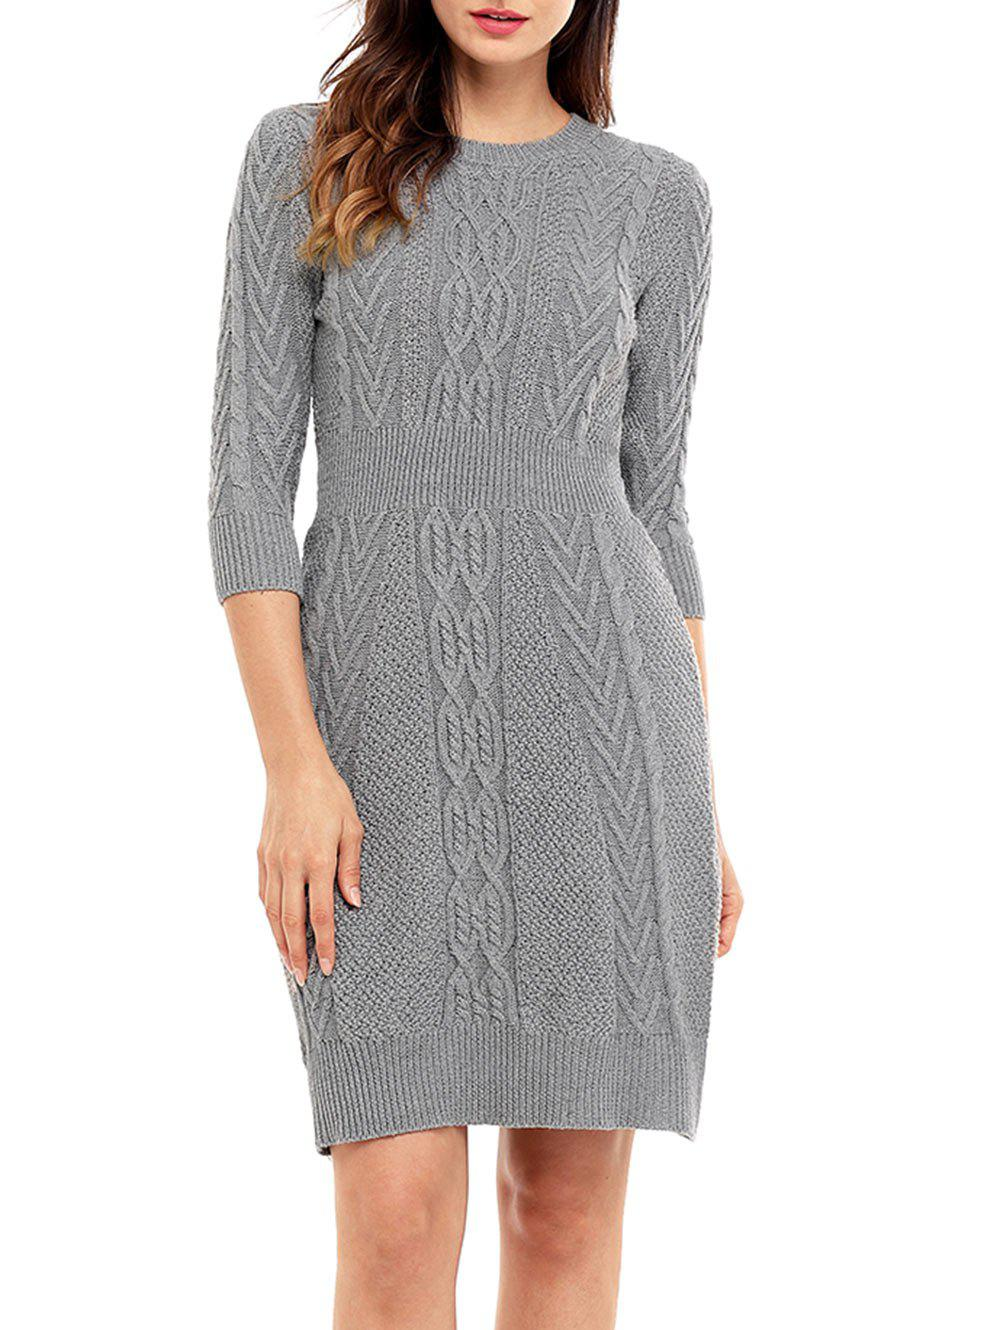 Crew Neck Cable Knitted Mini Dress - GRAY M